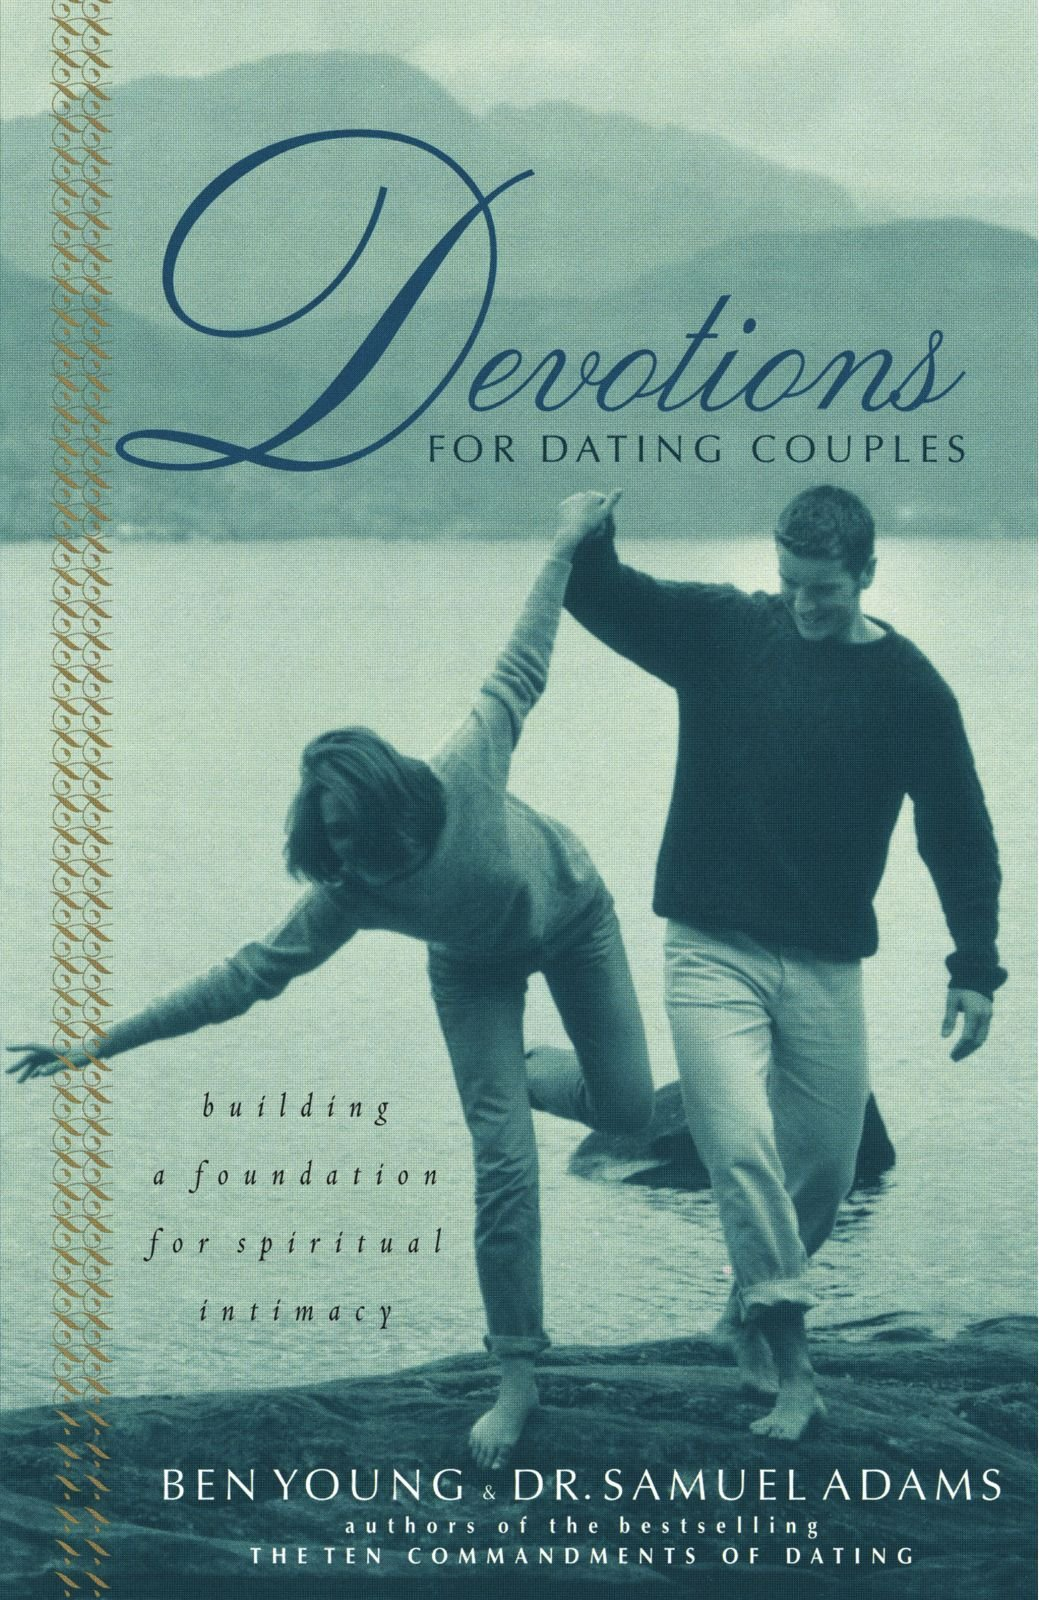 Devotions for dating couples summary of the cask